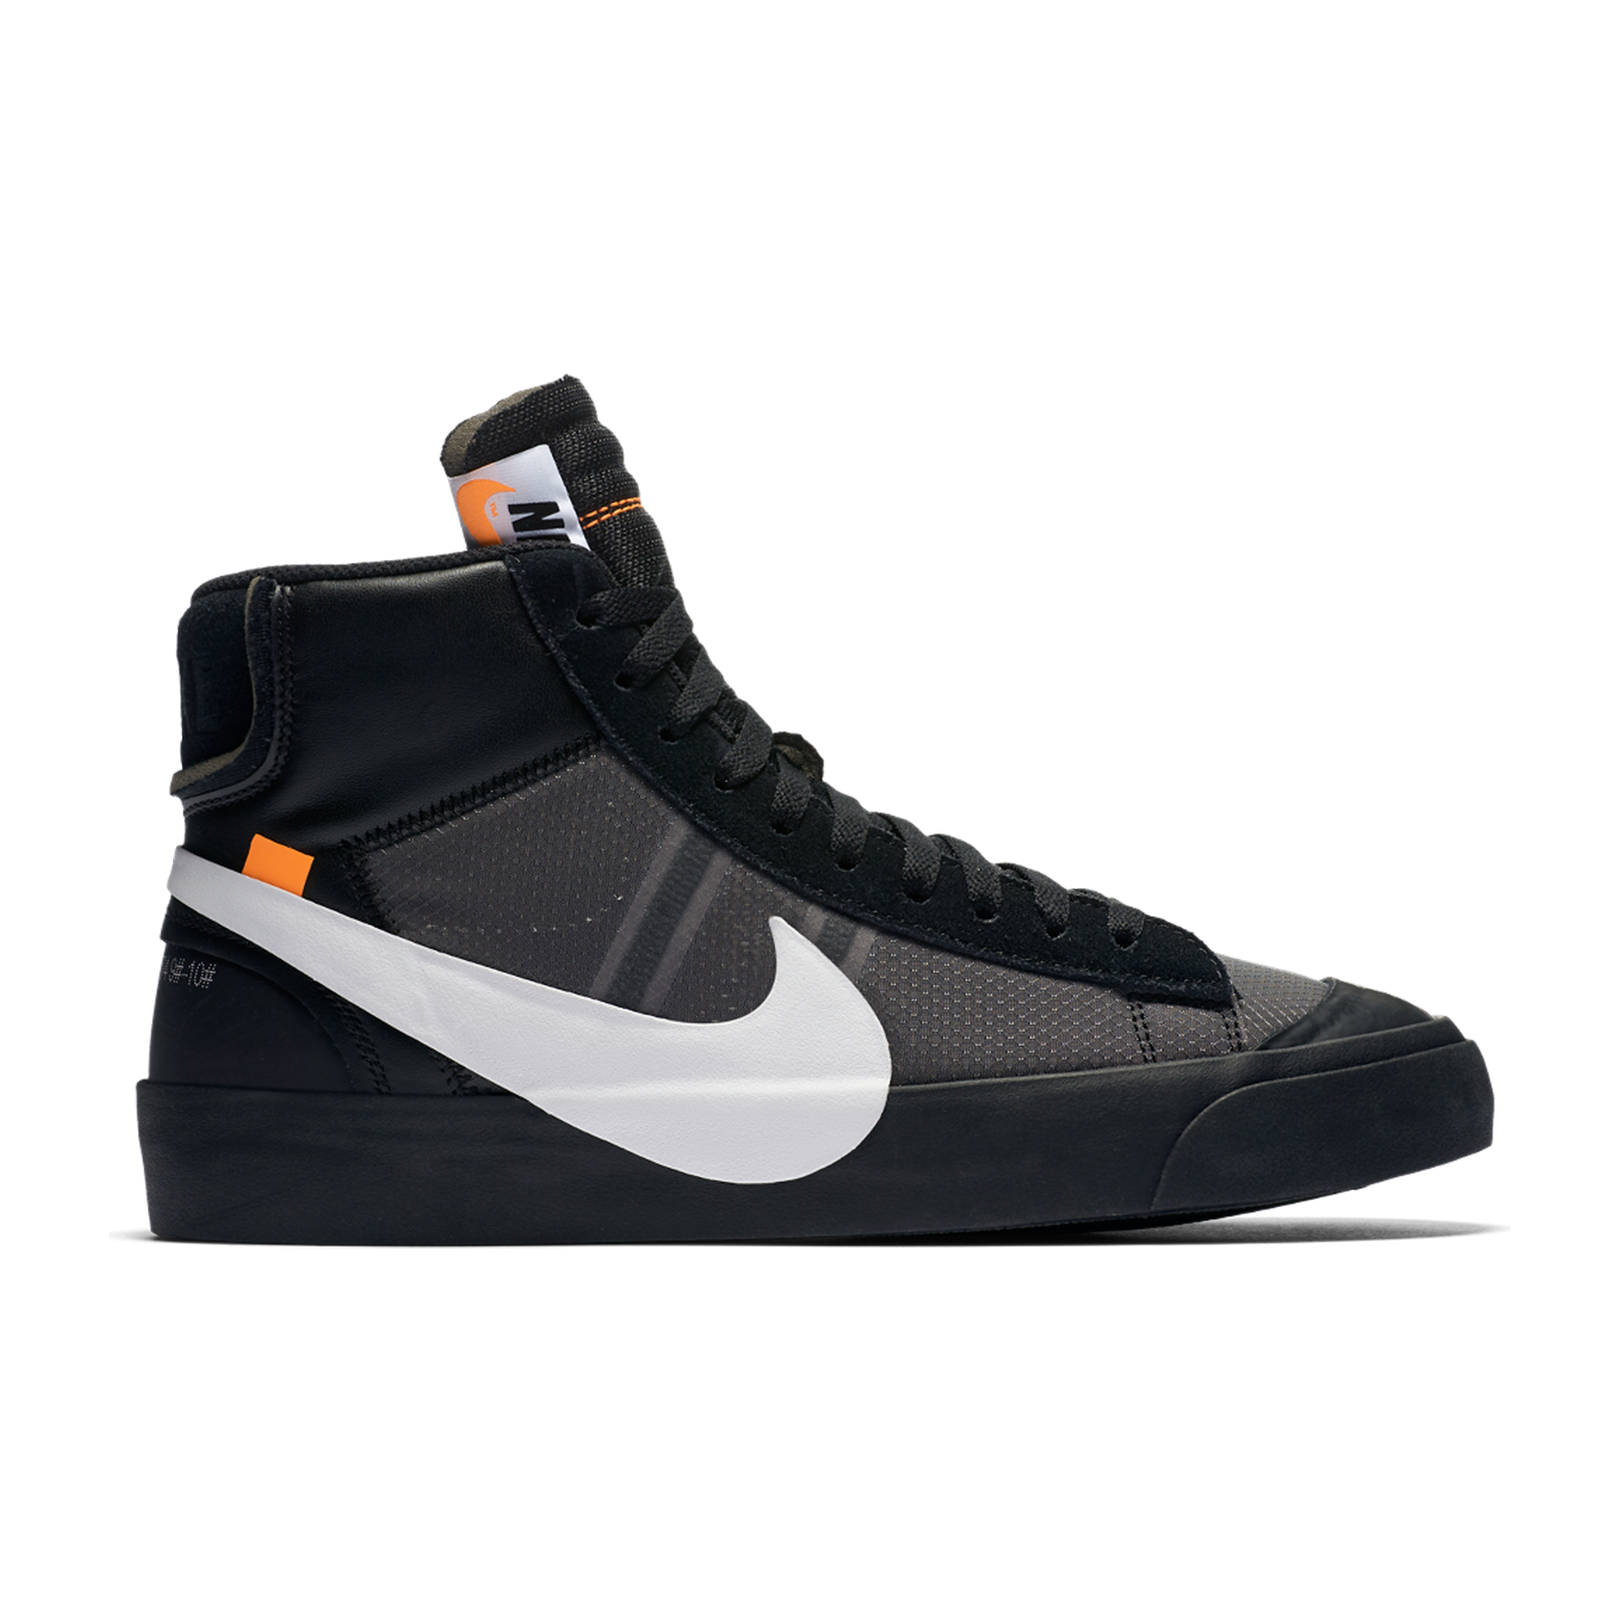 c20e44e1eaf A Definitive Ranking of Virgil Abloh s Off-White Nike Collabs    ONE37pm